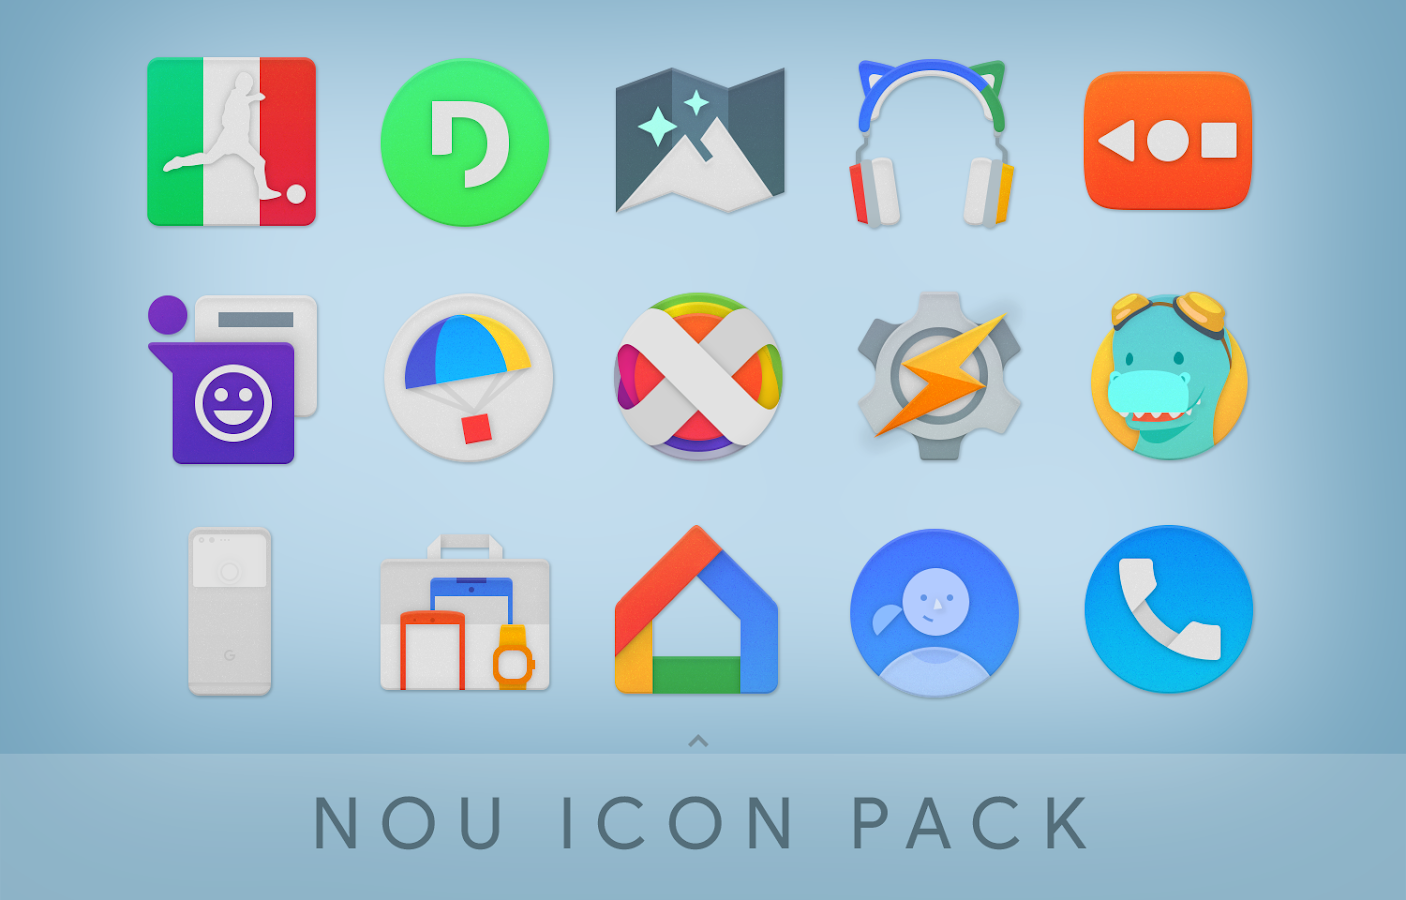 NOU - Icon Pack Screenshot 0